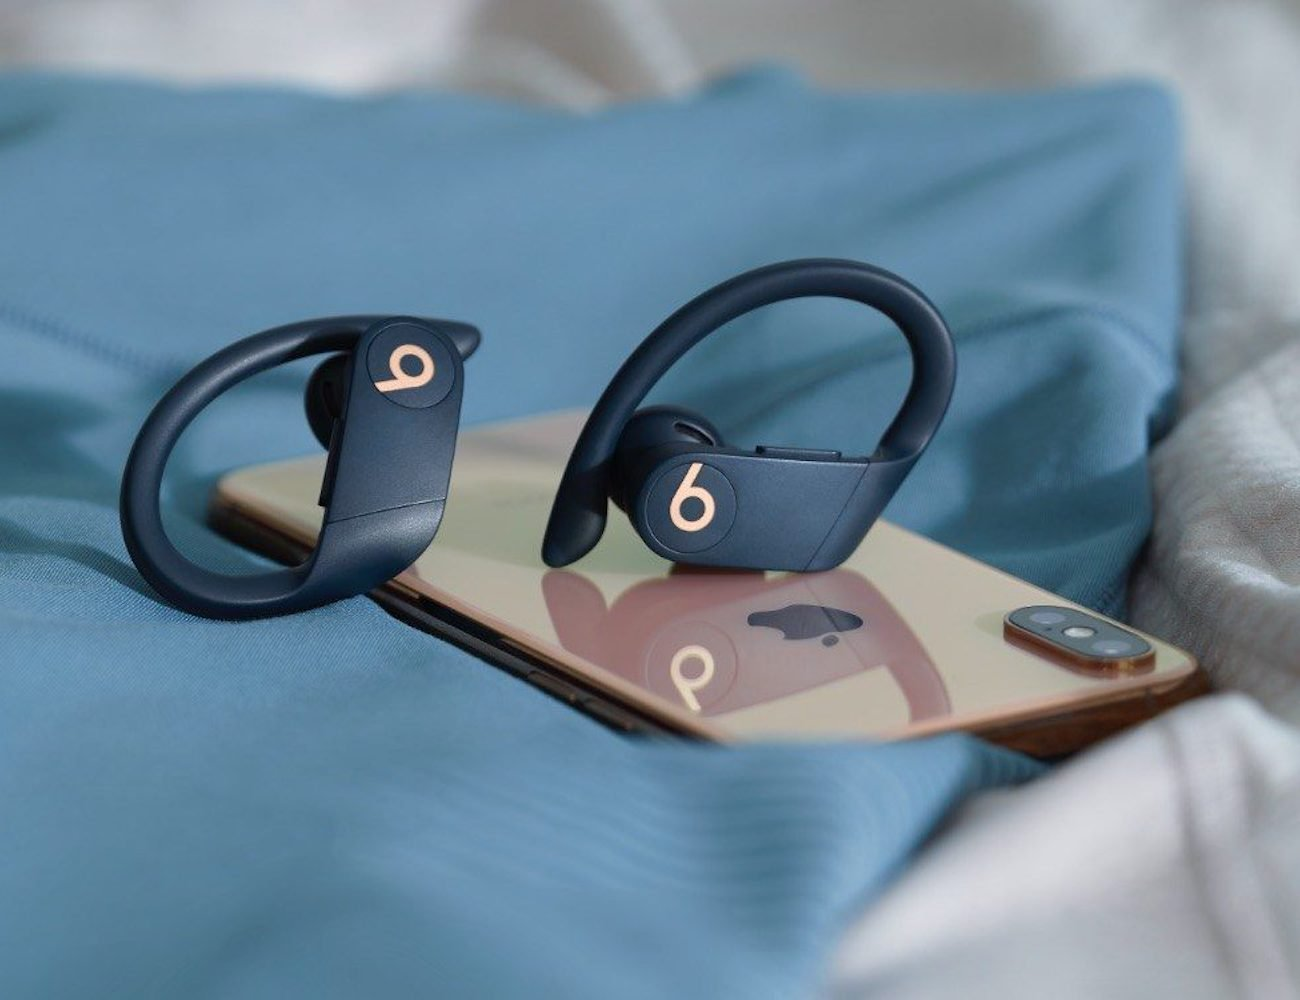 Beats by Dre Powerbeats Pro High-Performance Earphones will improve your workouts